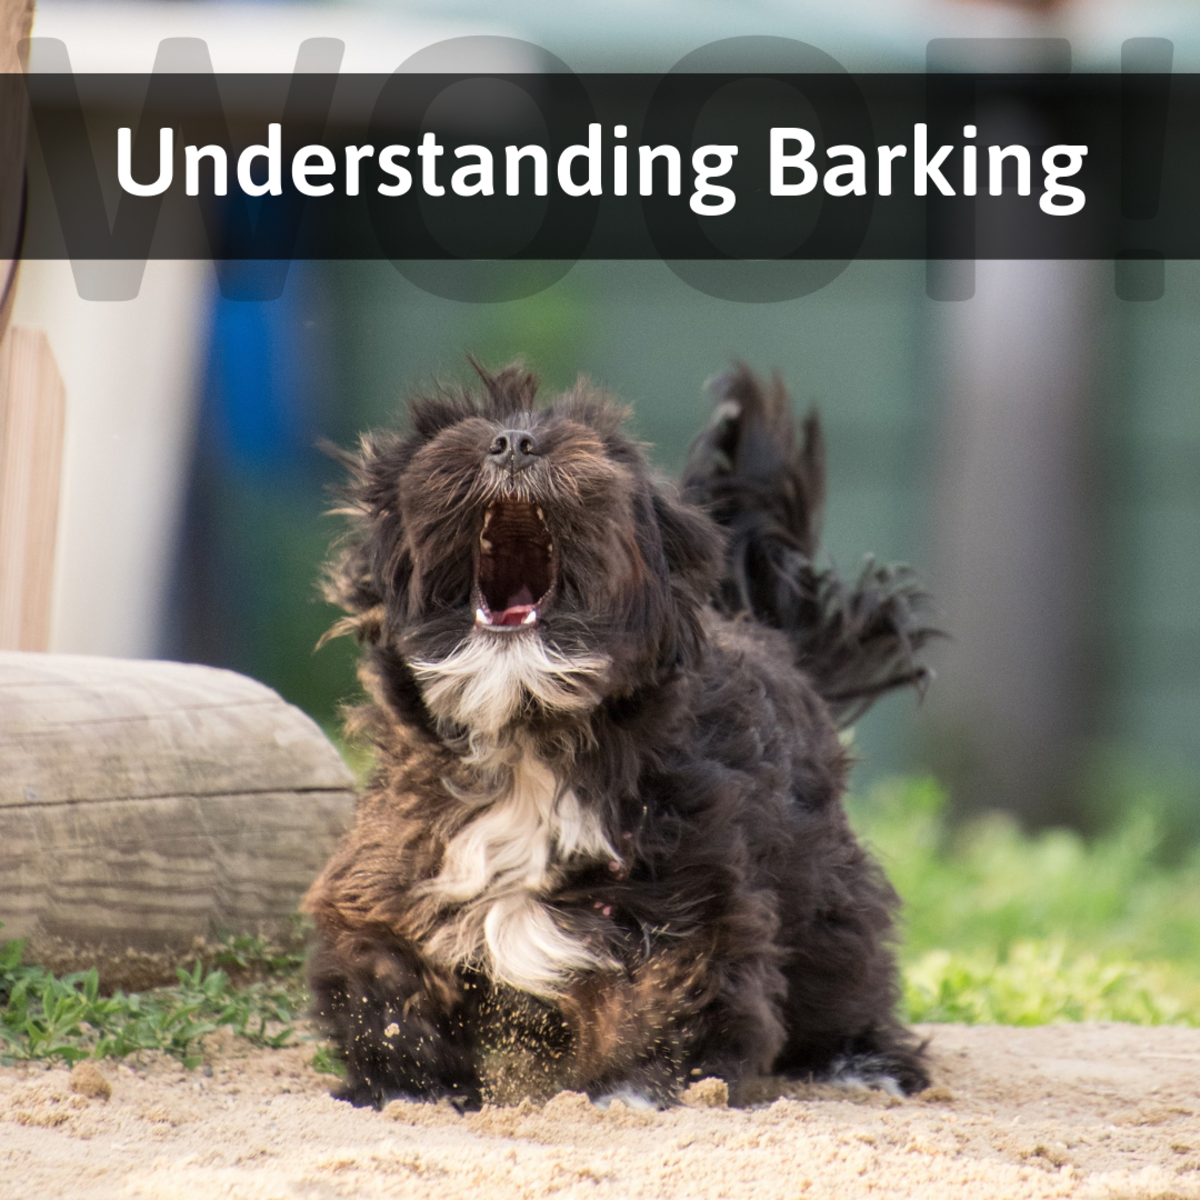 Why Do Dogs Bark? Understanding Barking Behavior and Body Language